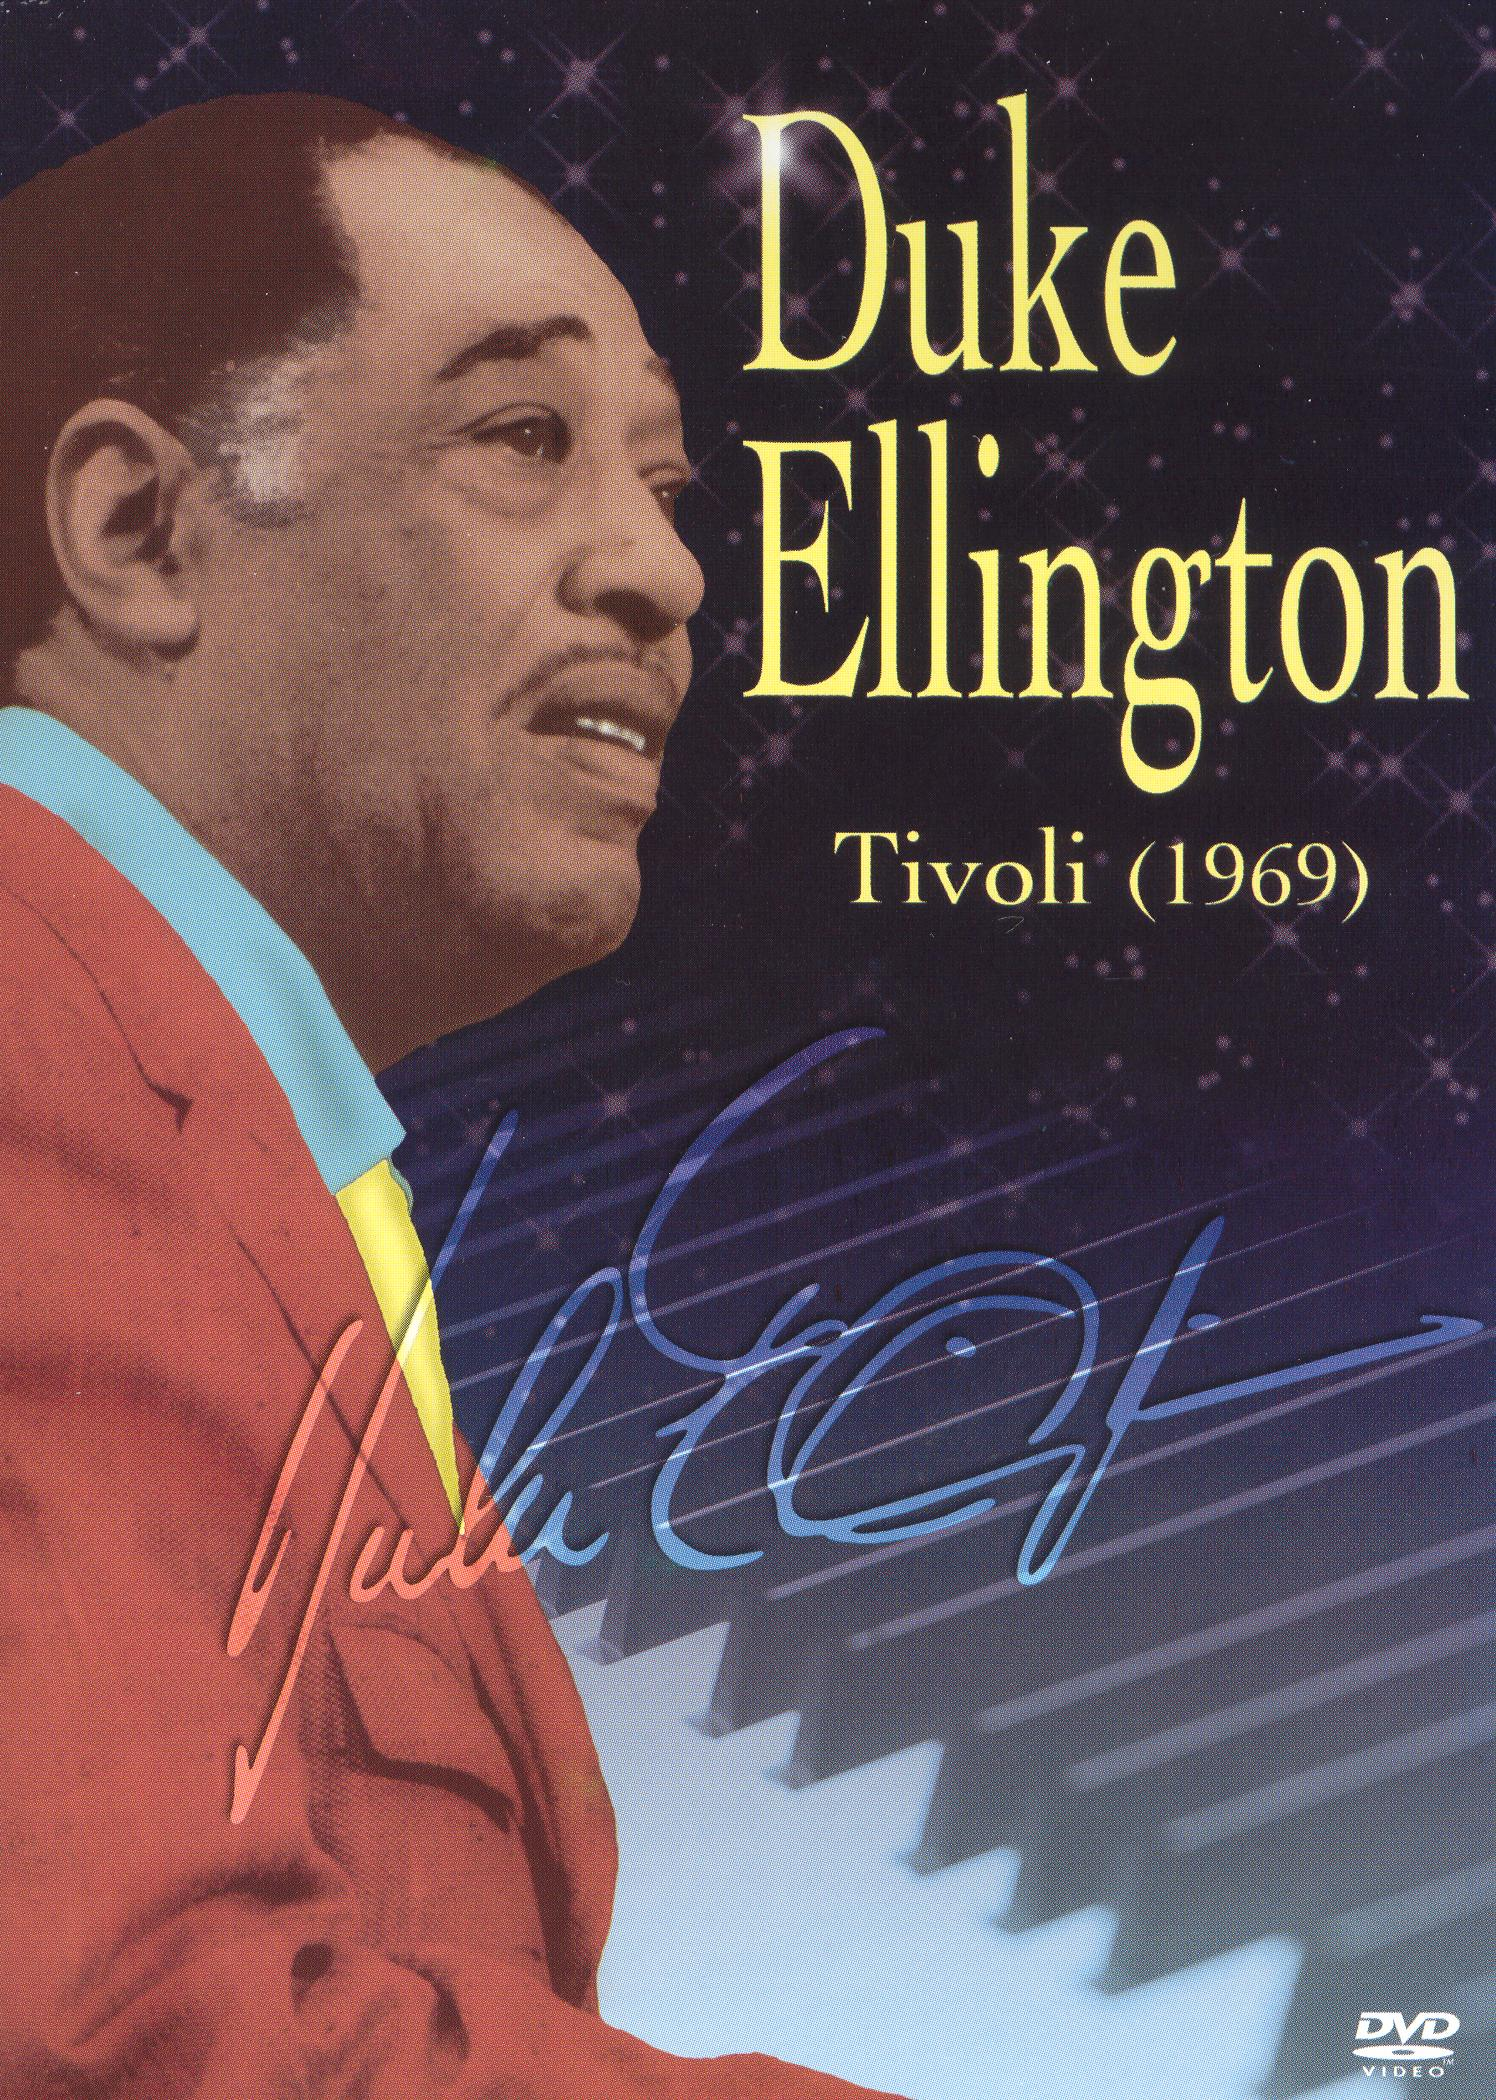 Duke Ellington: Tivoli (1969)